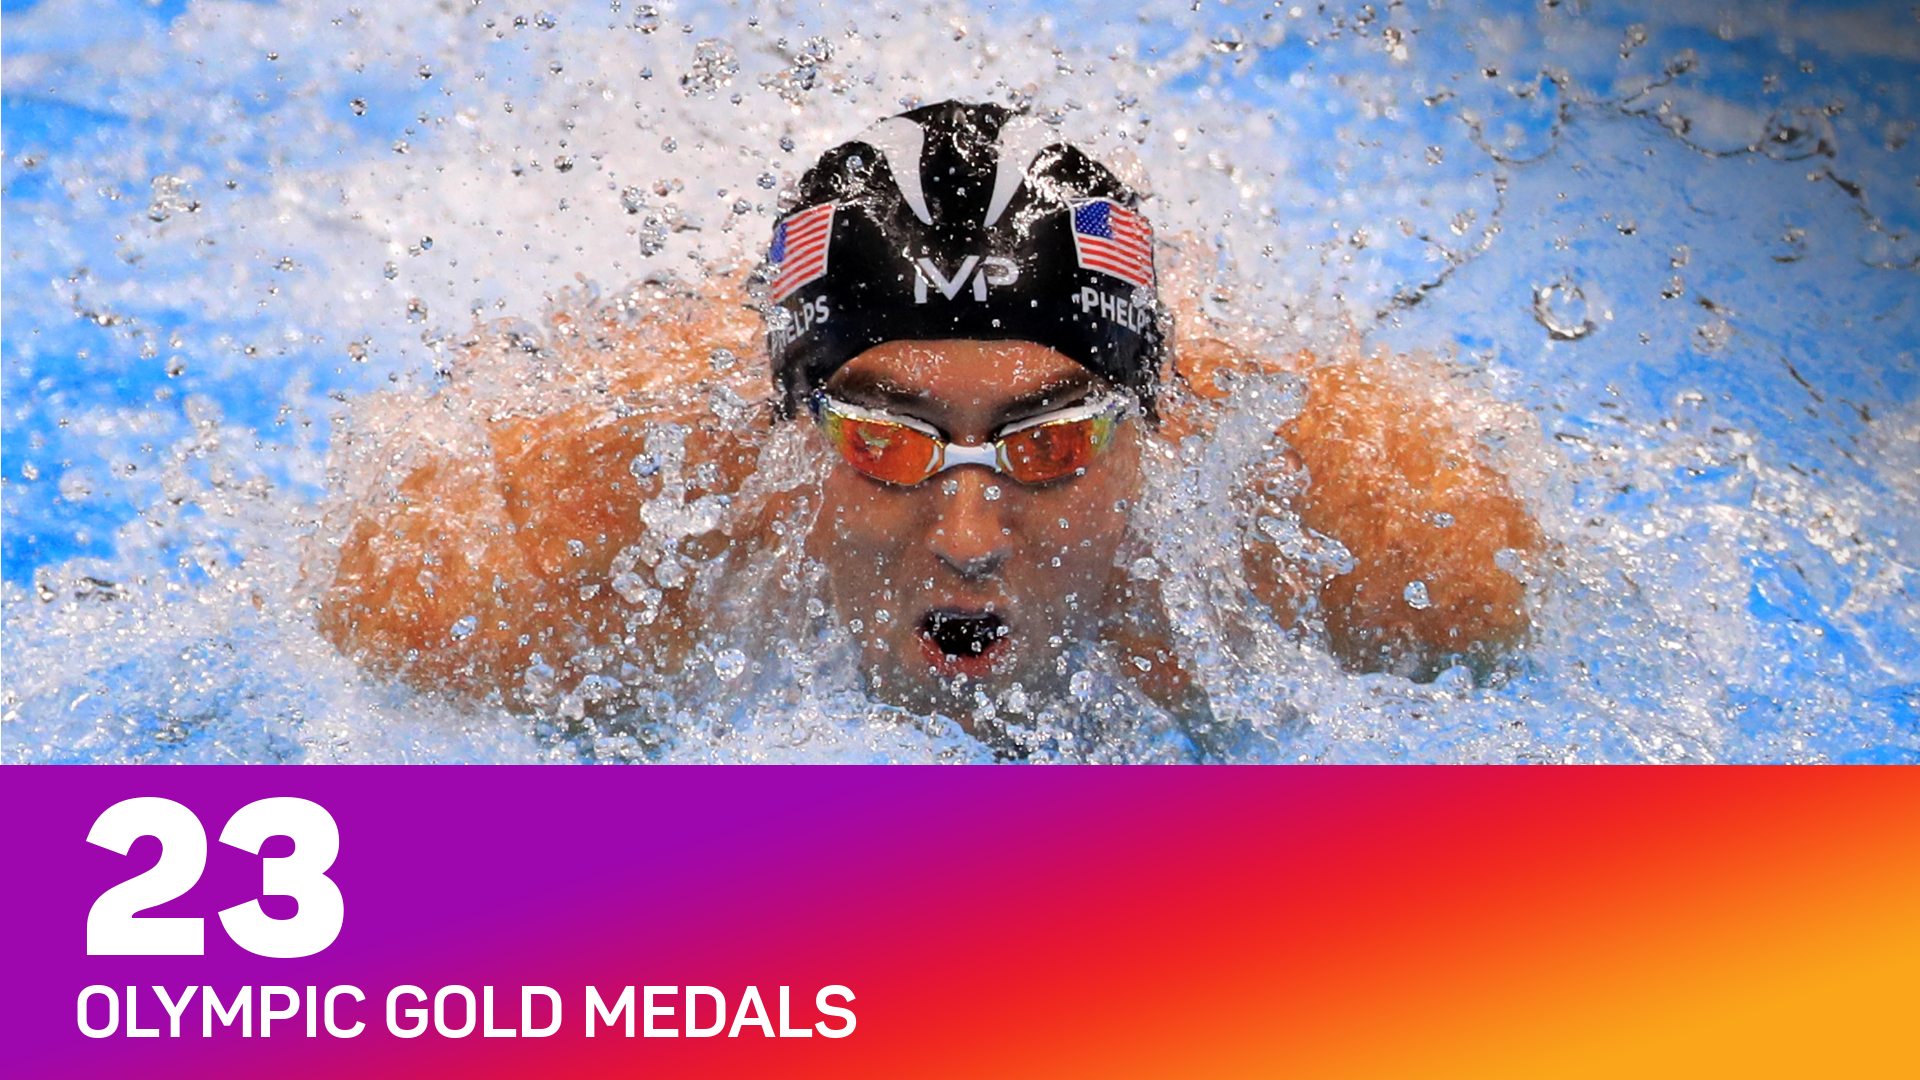 Michael Phelps is the all-time record holder for Olympic golds